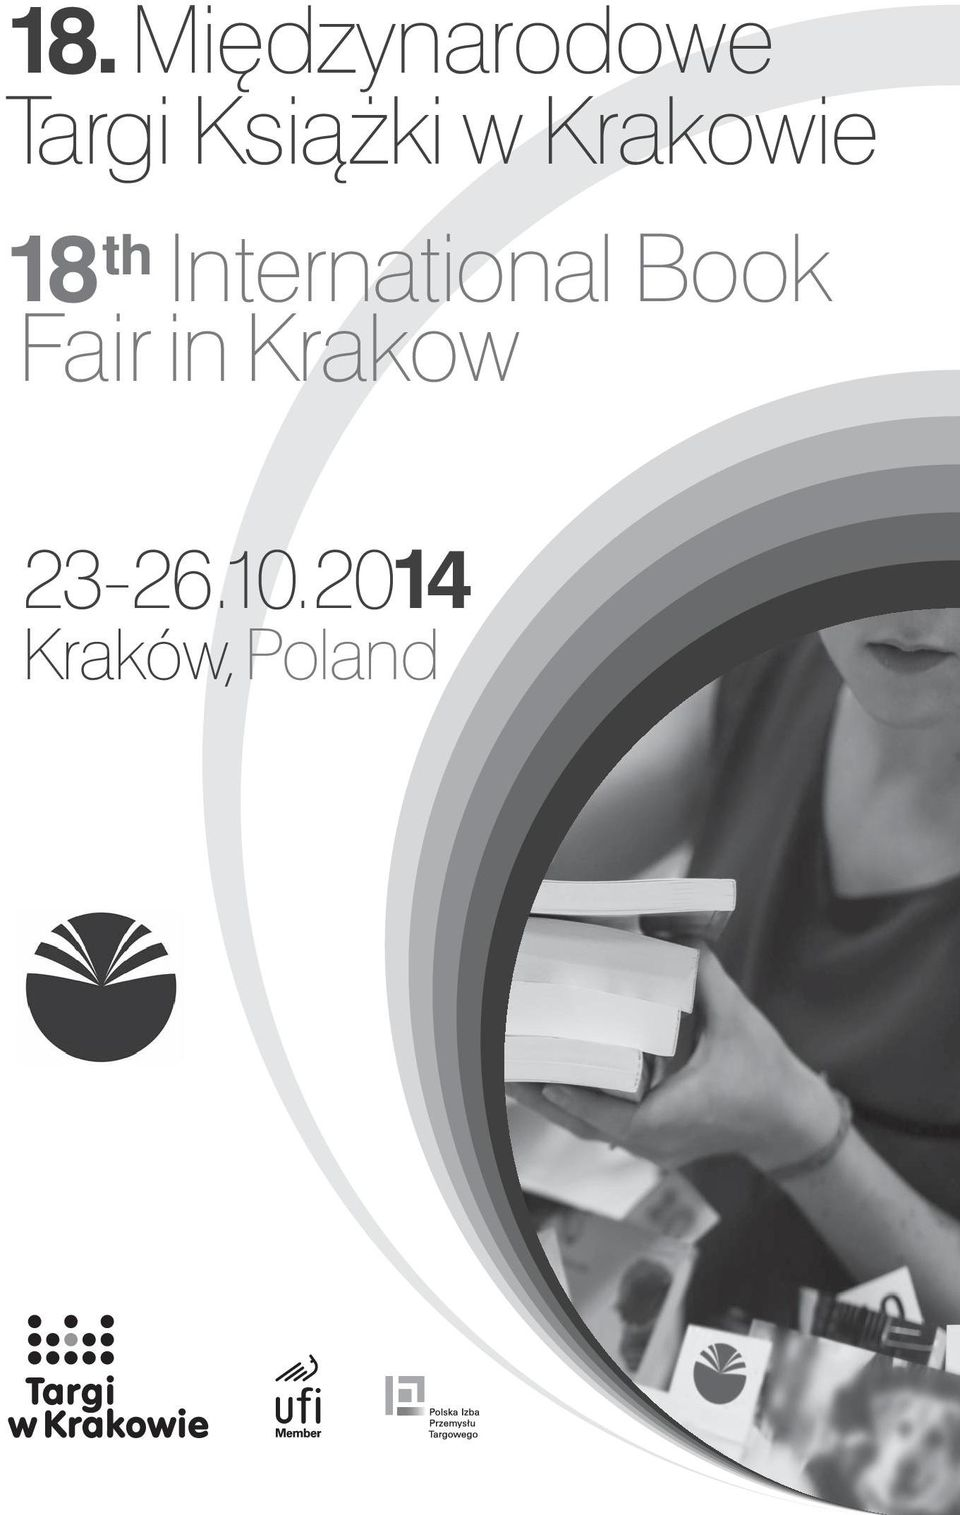 International Book Fair in